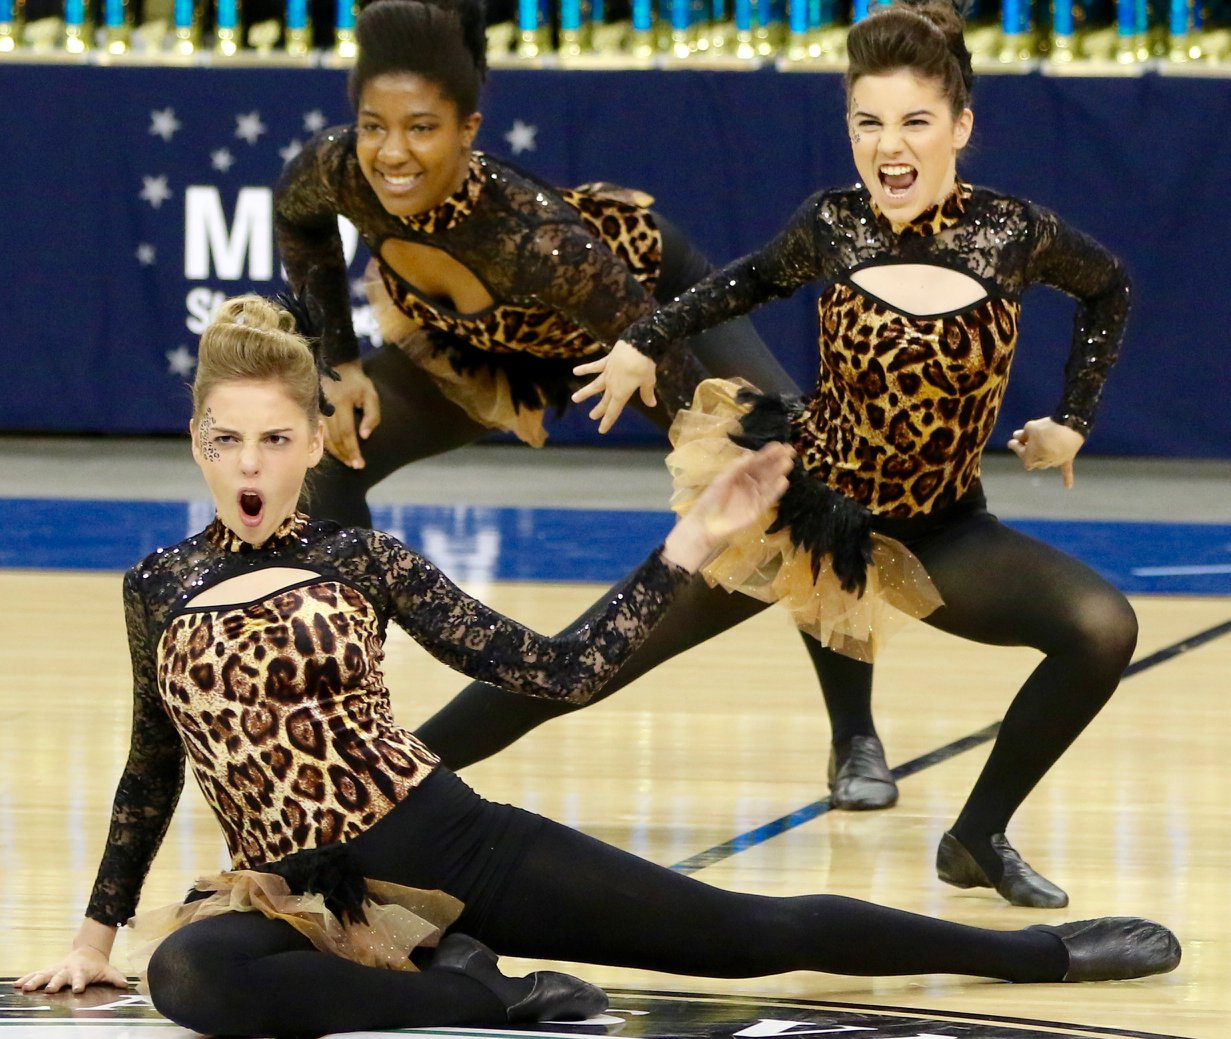 """Sophomores Susie Seidel and Sadie Hershenow perform with junior Kaleiya Andrews. The team honed their technical skills and stage presence. """"I've learned even the best dancers are going to make mistakes when they're performing, but as long as you keep smiling and having fun no one will even notice,"""" Seidel said."""